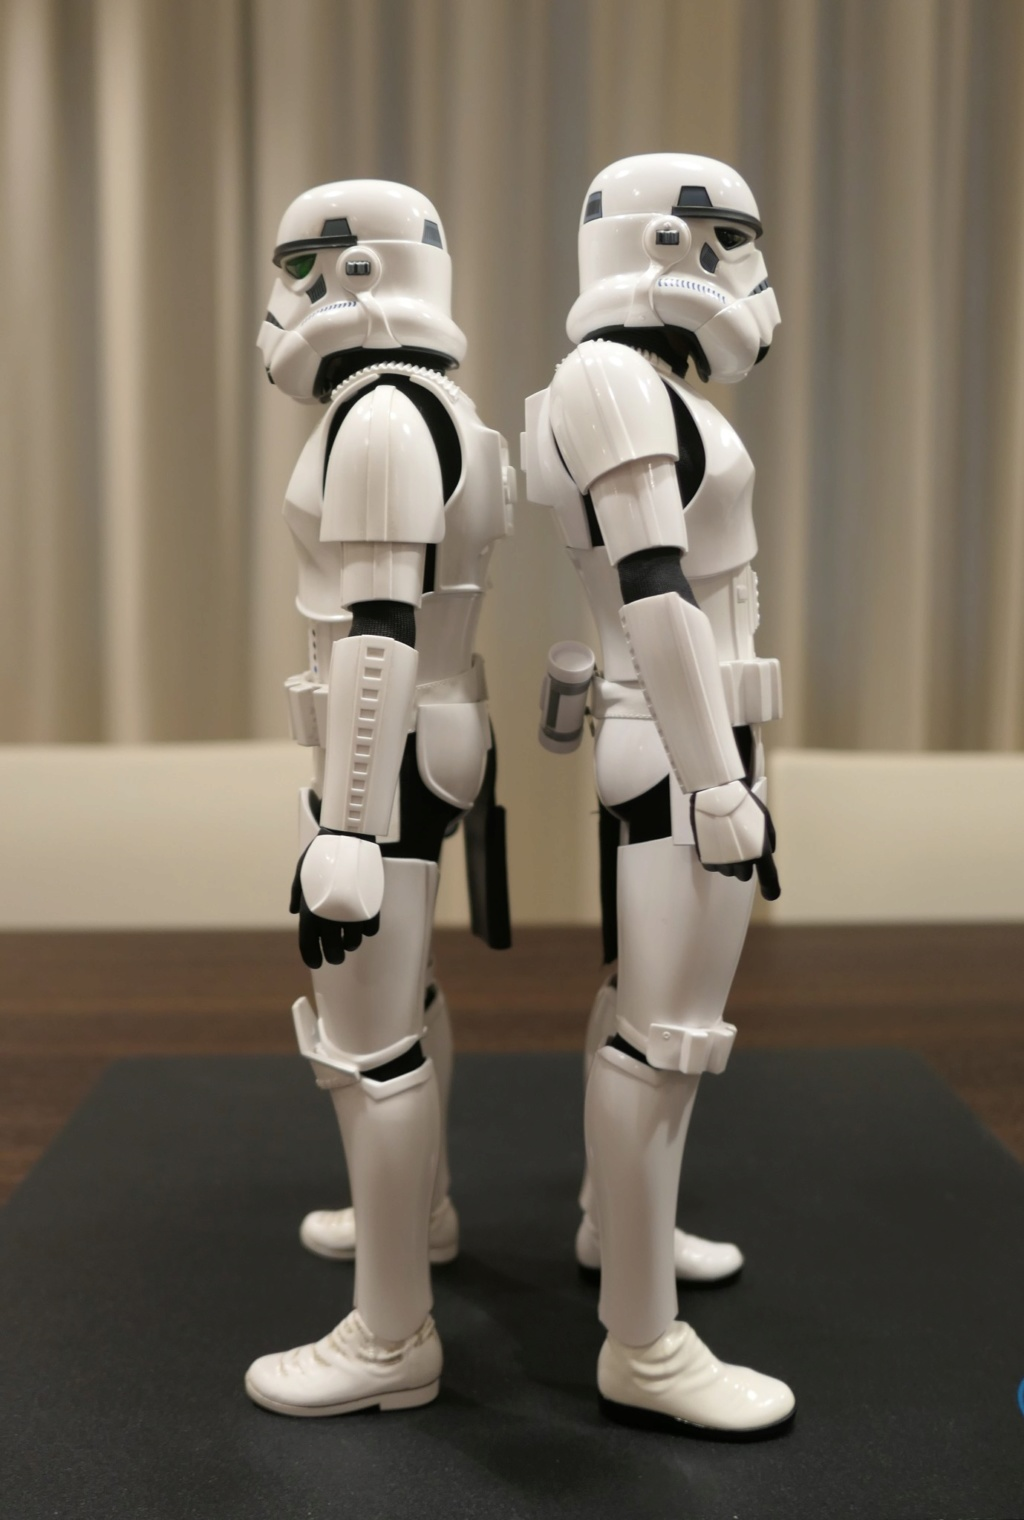 stormtrooper - NEW PRODUCT: HOT TOYS: STAR WARS STORMTROOPER (DELUXE VERSION) 1/6TH SCALE COLLECTIBLE FIGURE 2s0z5l10